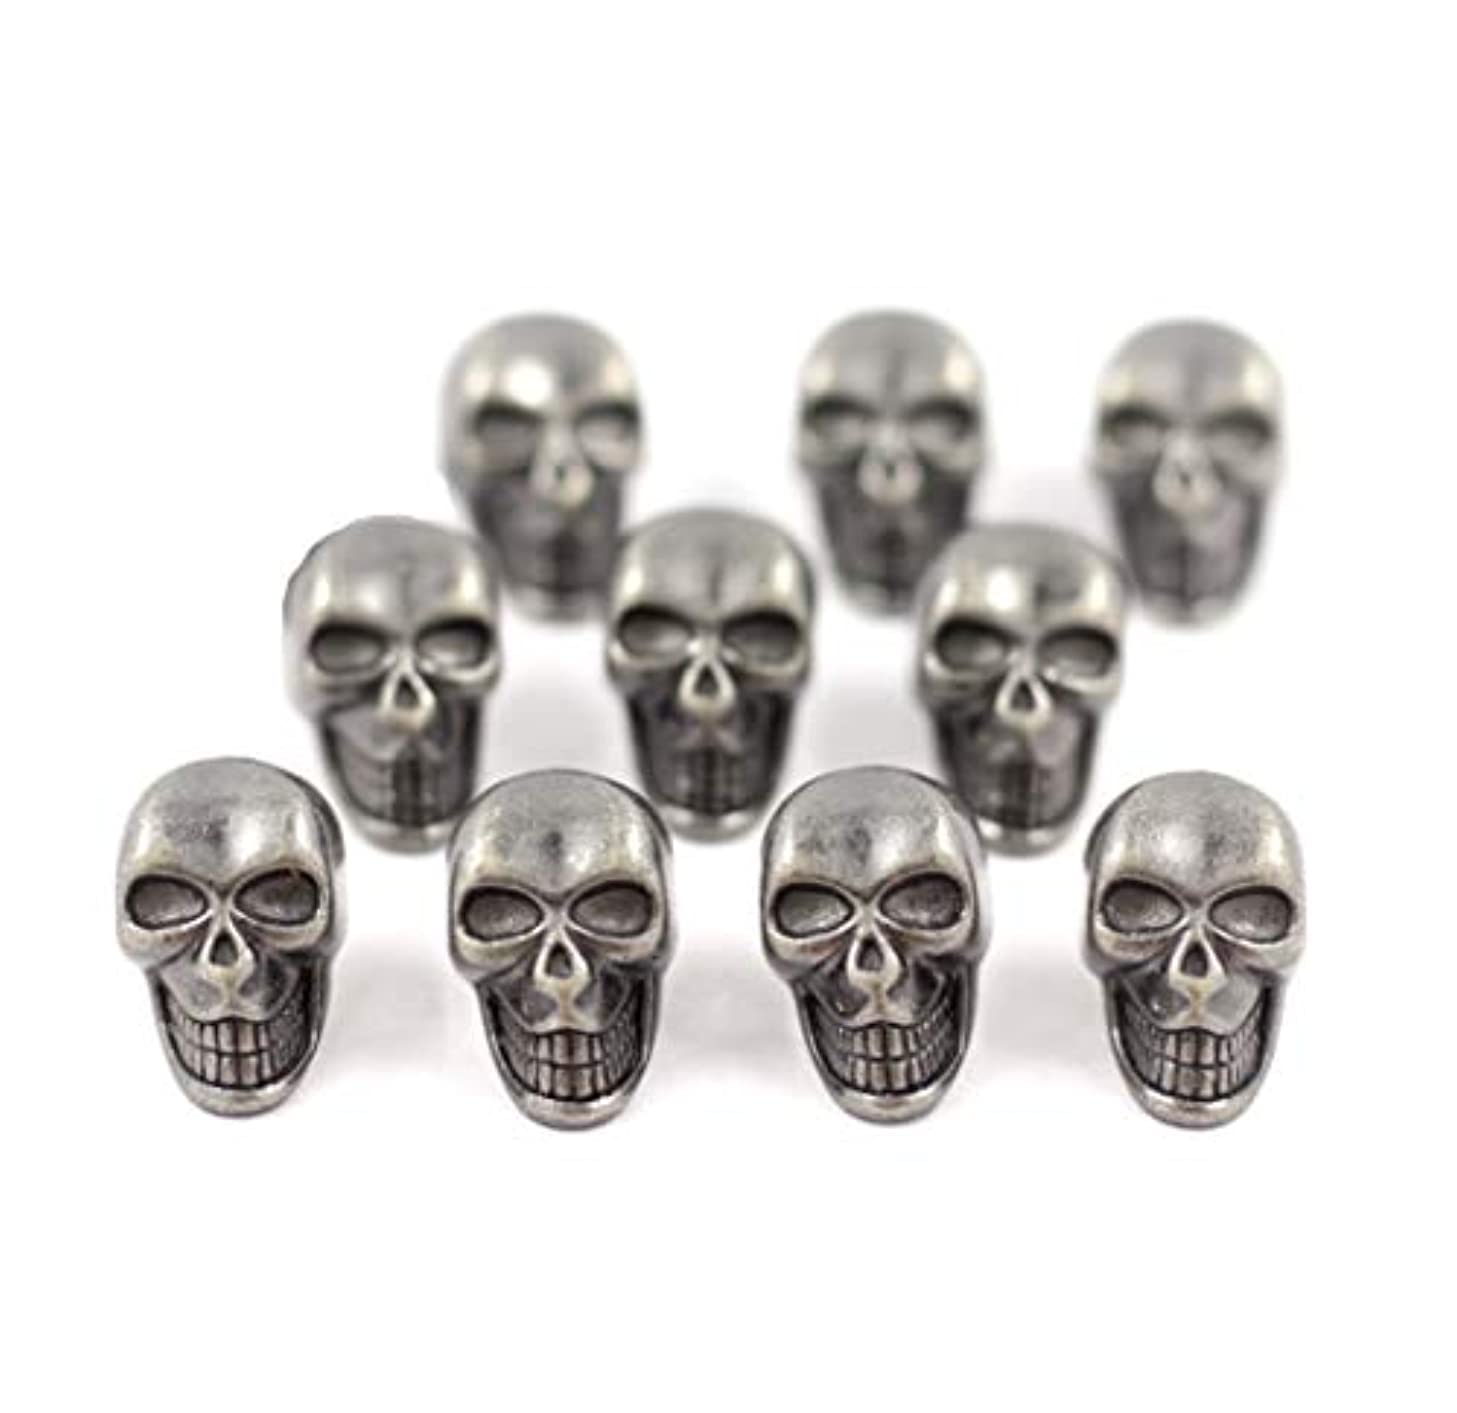 Bezelry 10 Pieces Small Skull Gray Silver Buttons. 16mmX10mm. (Gray Silver)